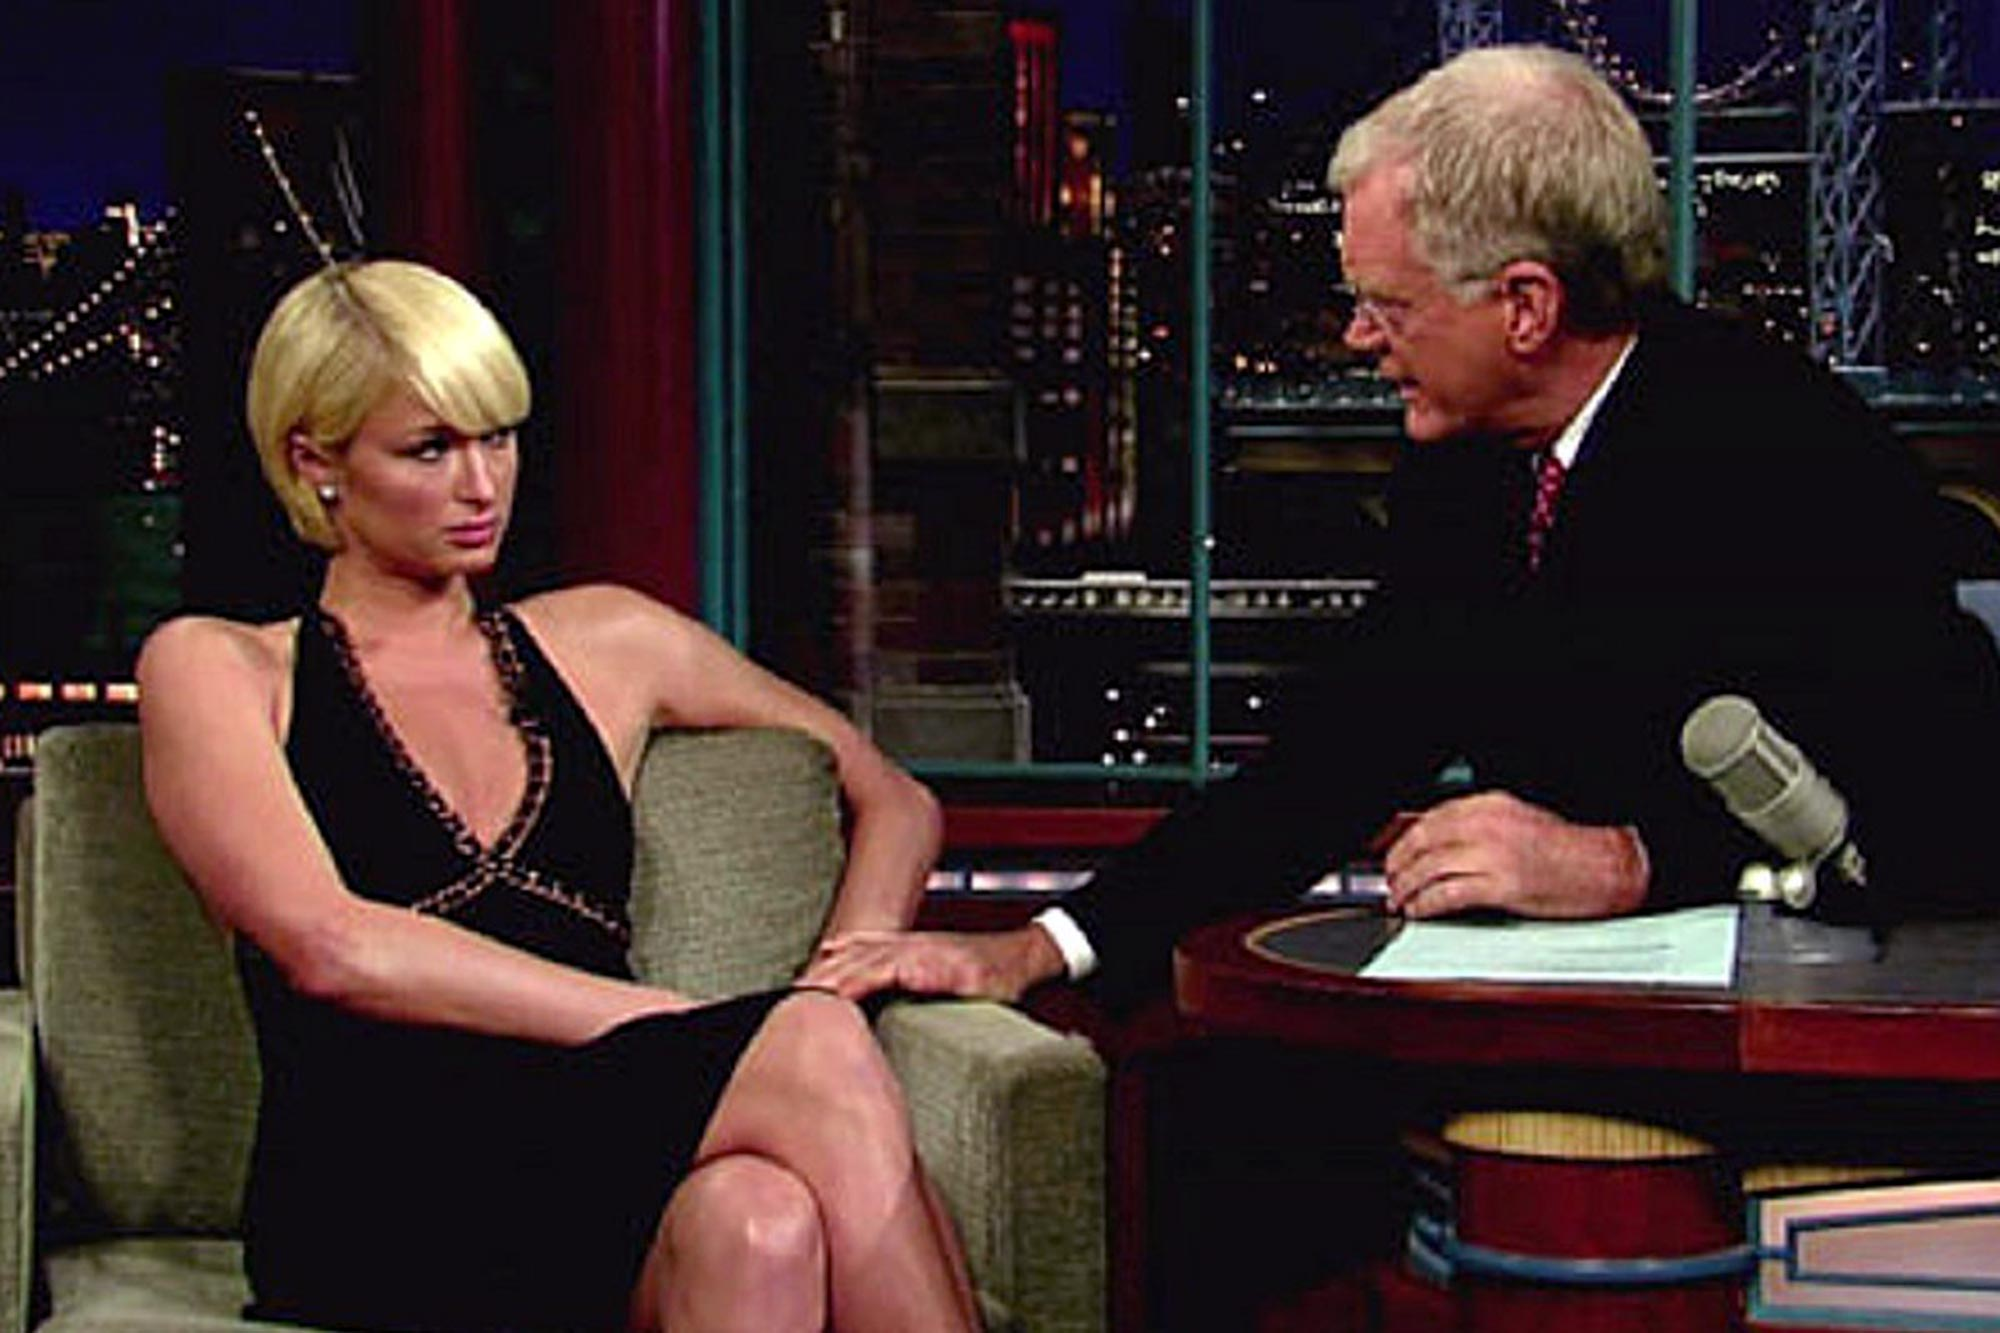 Paris Hilton on the Late Show with David Letterman in 2007